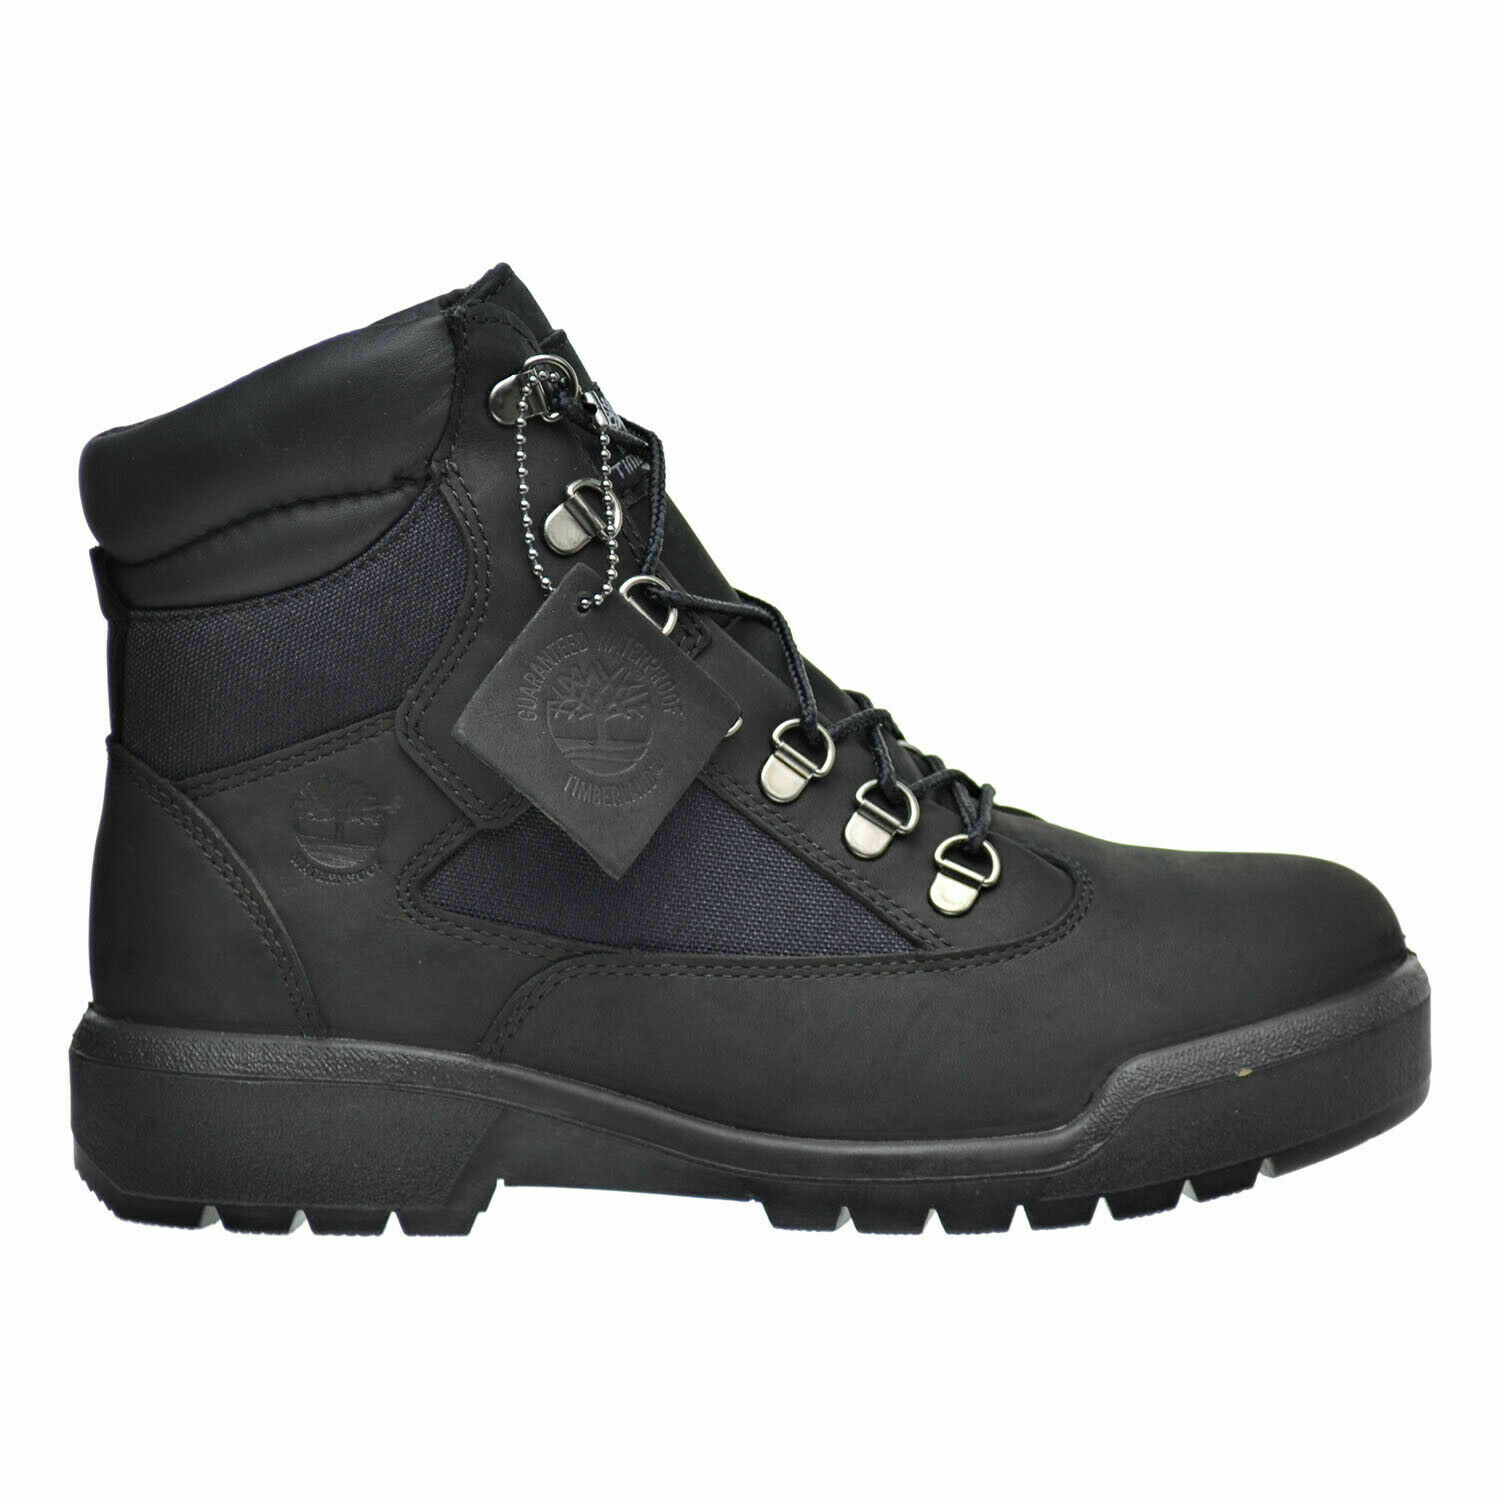 Men's Brand New Timberland Field Boot Athletic Fashion Sneakers [TB0A17KC]